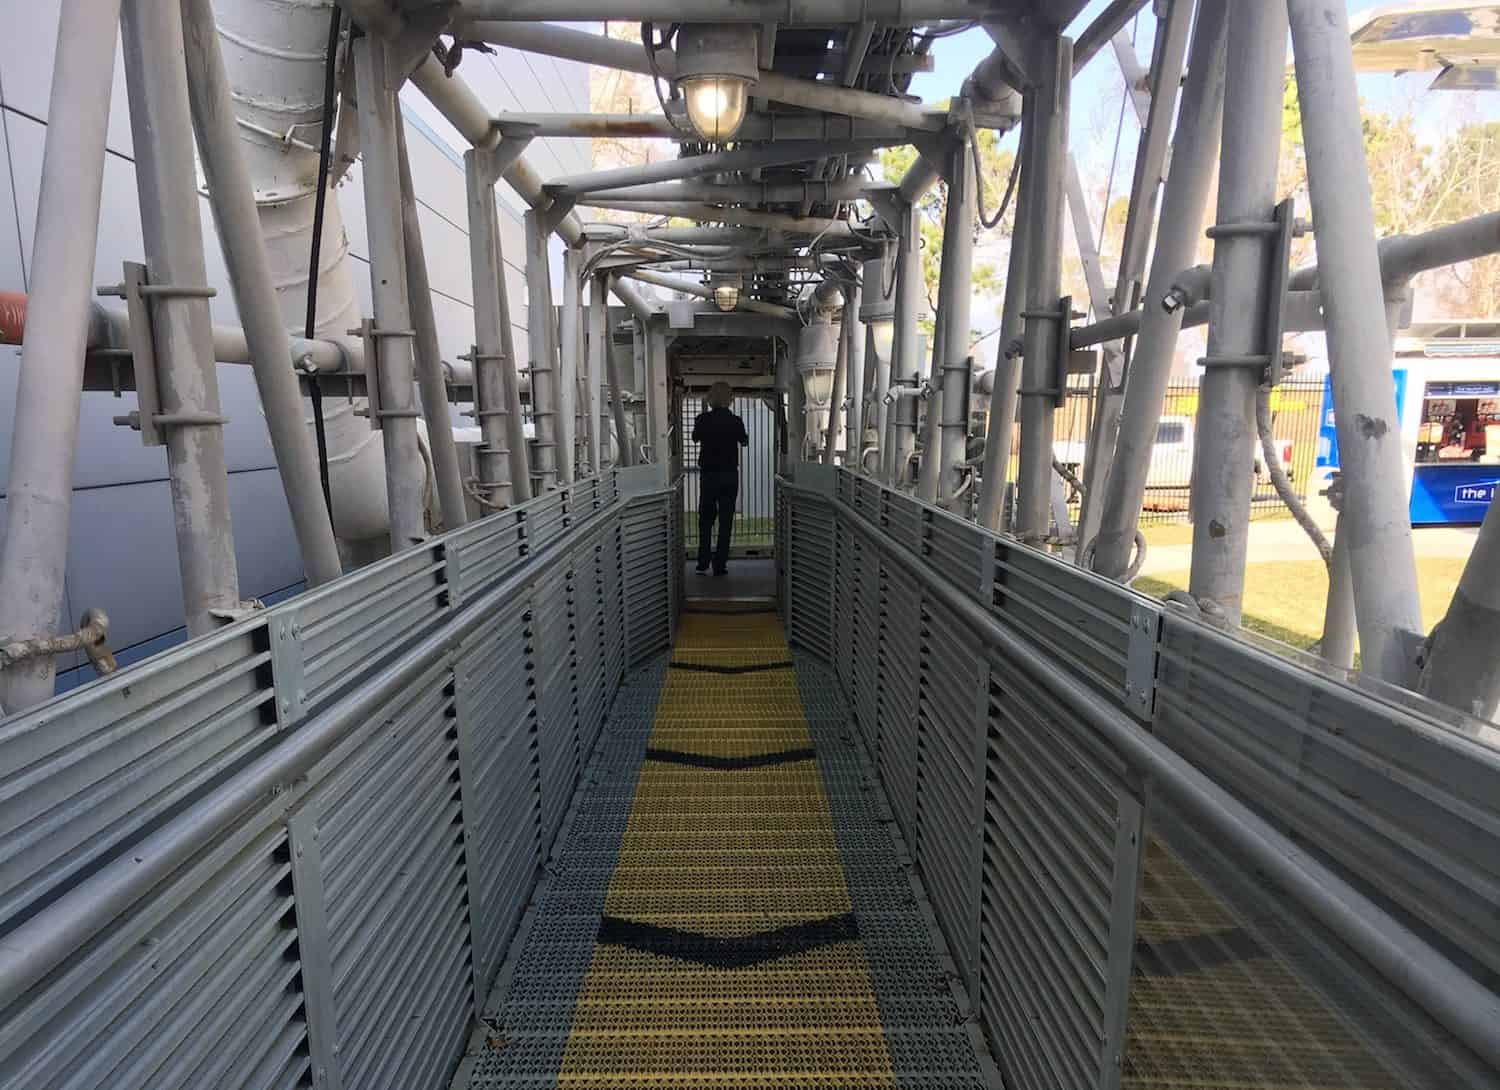 Walkway at Space Center Houston